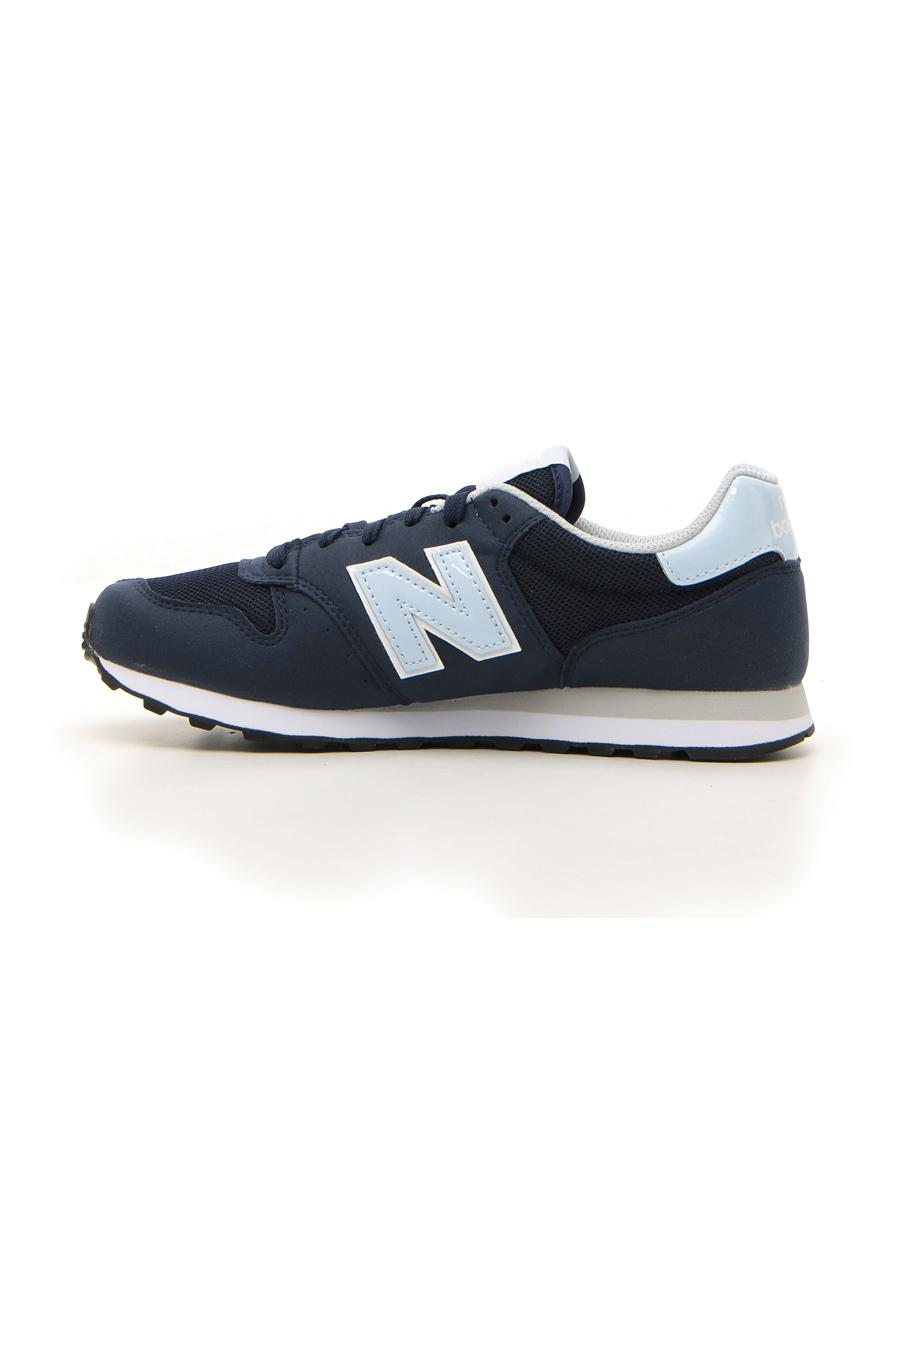 SNEAKERS NEW BALANCE 500PT donna blu | Pittarello